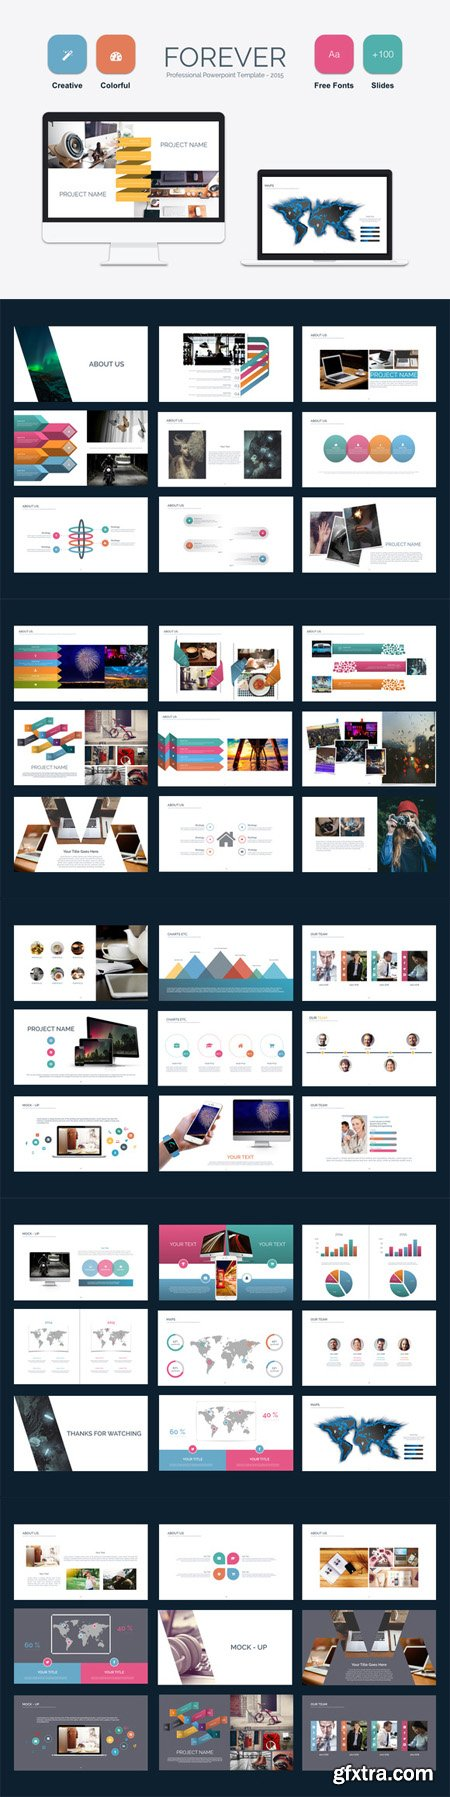 CM - Forever Powerpoint Template 507034